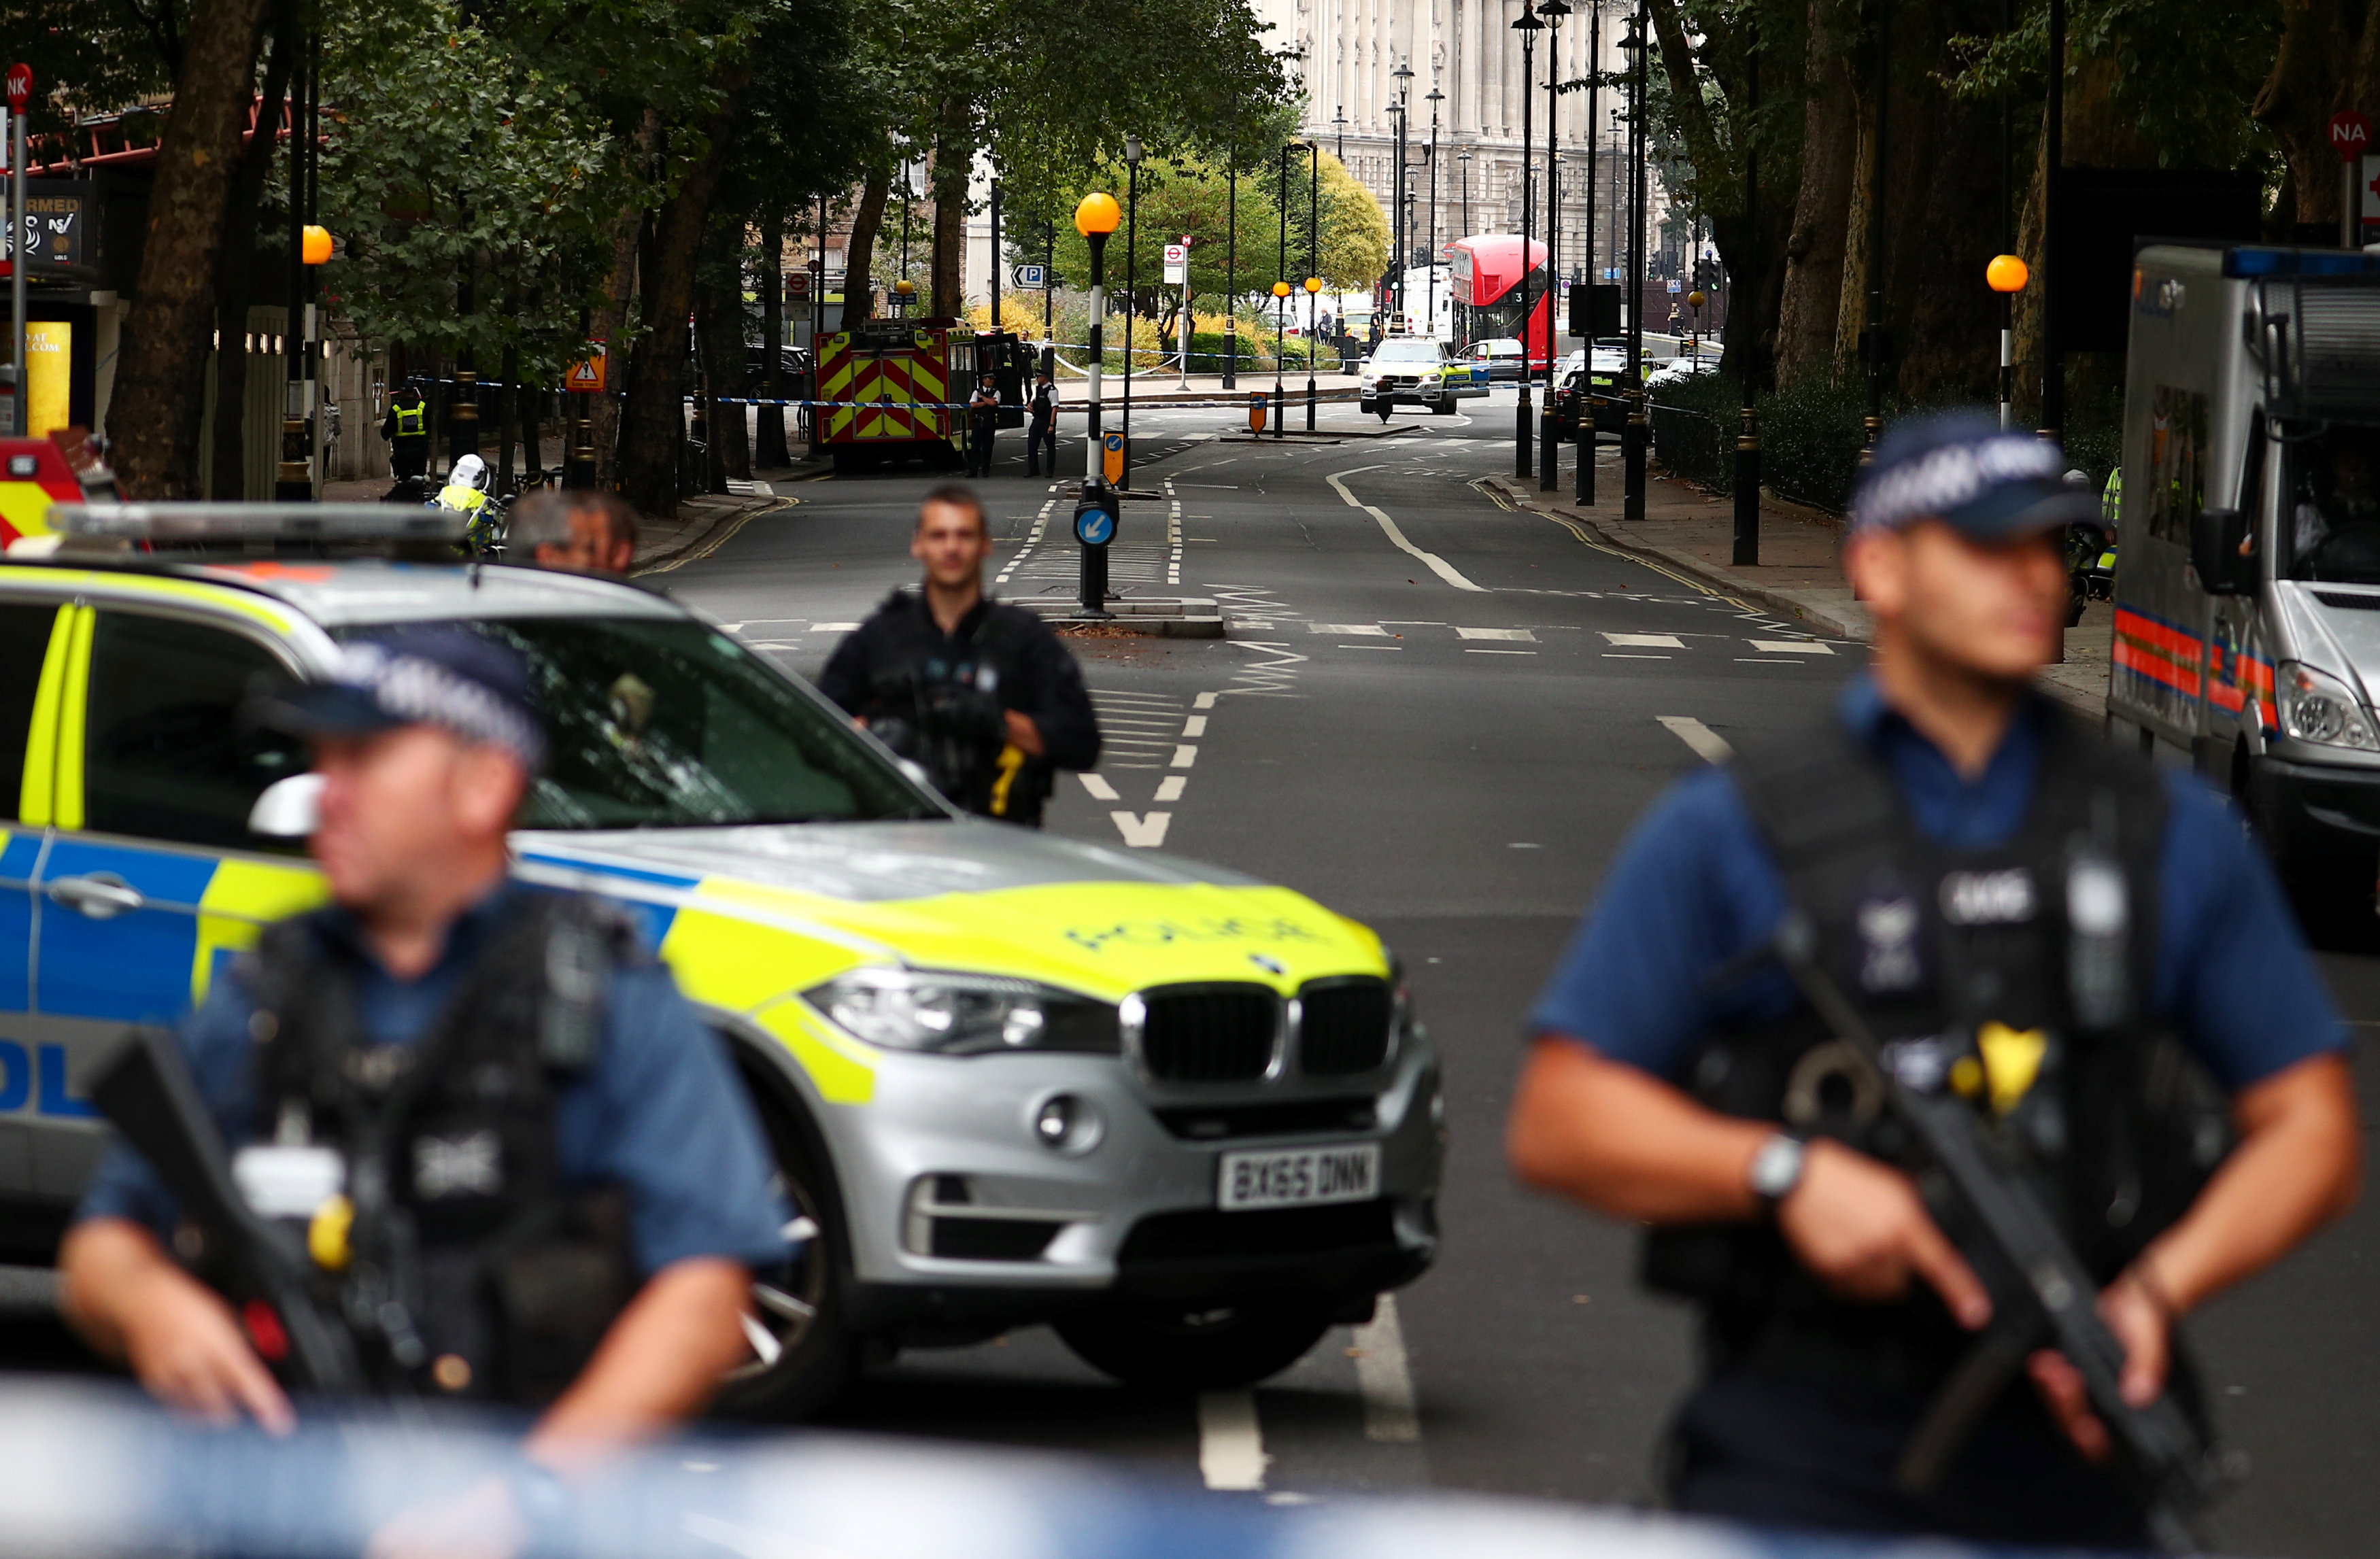 Armed police officers stand at a cordon after a car crashed outside the Houses of Parliament in Westminster, London, Britain, August 14, 2018. REUTERS/Hannah McKay